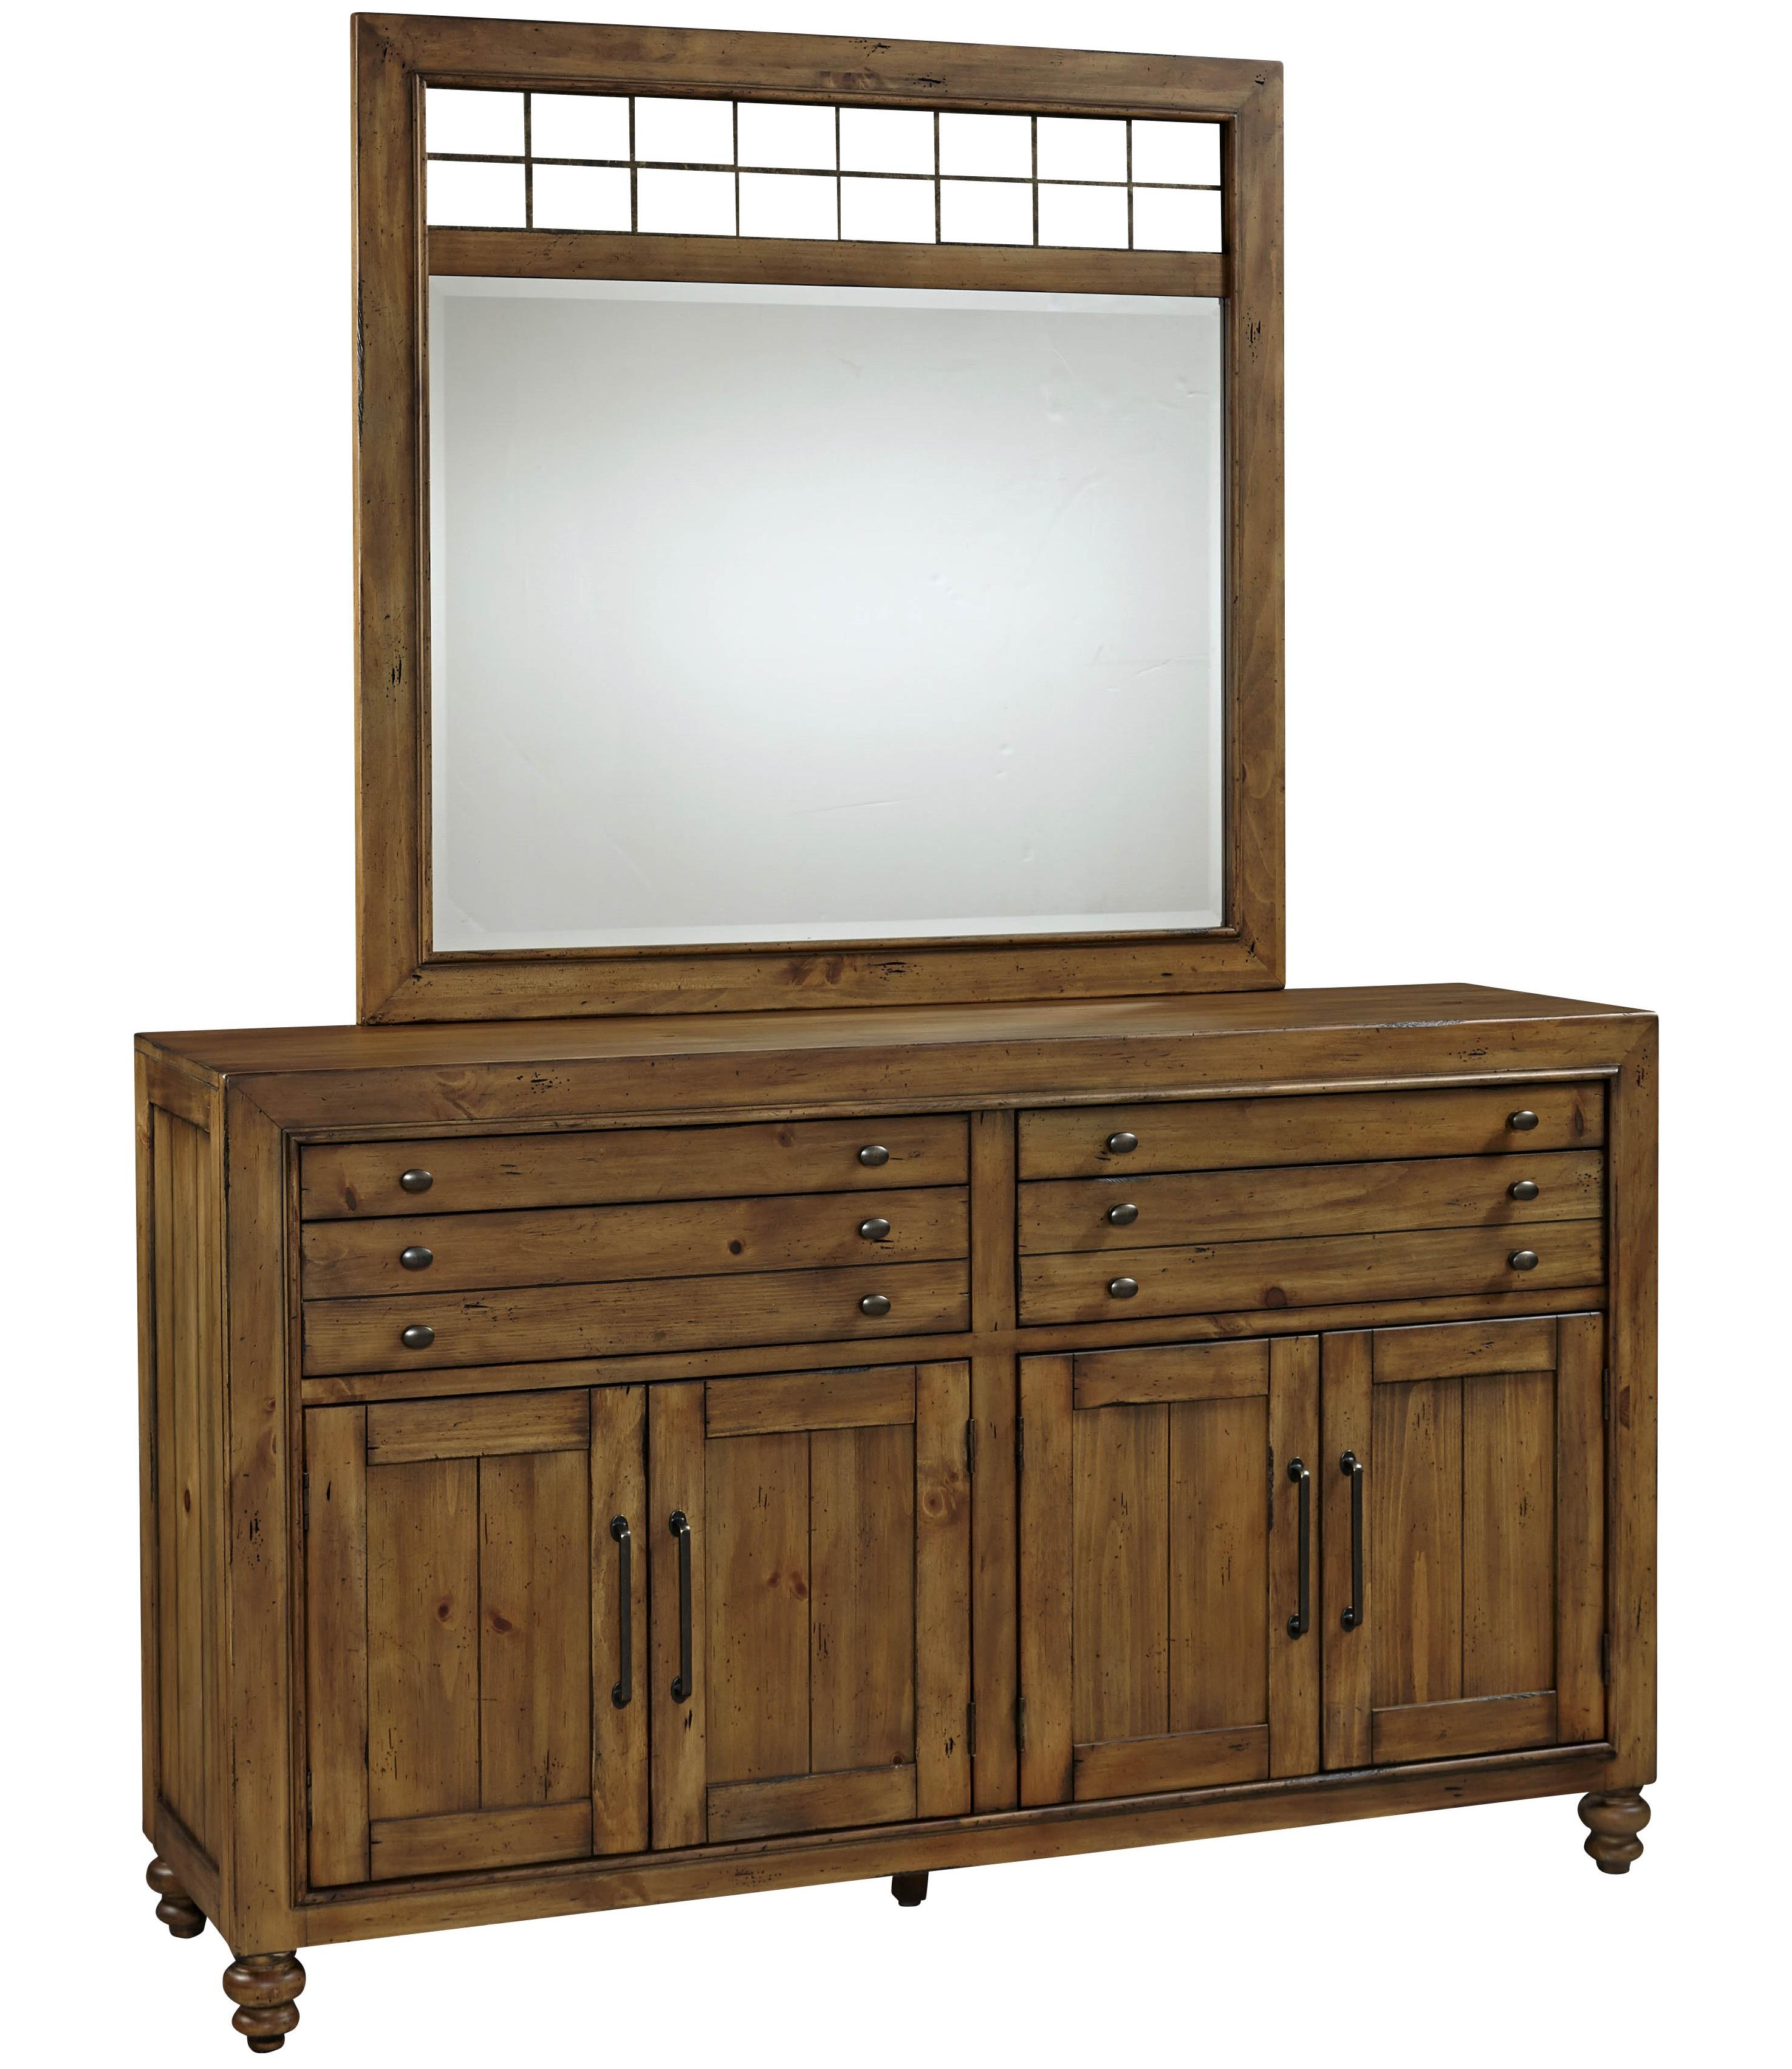 Broyhill Furniture Bethany Square Door Dresser and Landscape Mirror Set - Item Number: 4930-232+6